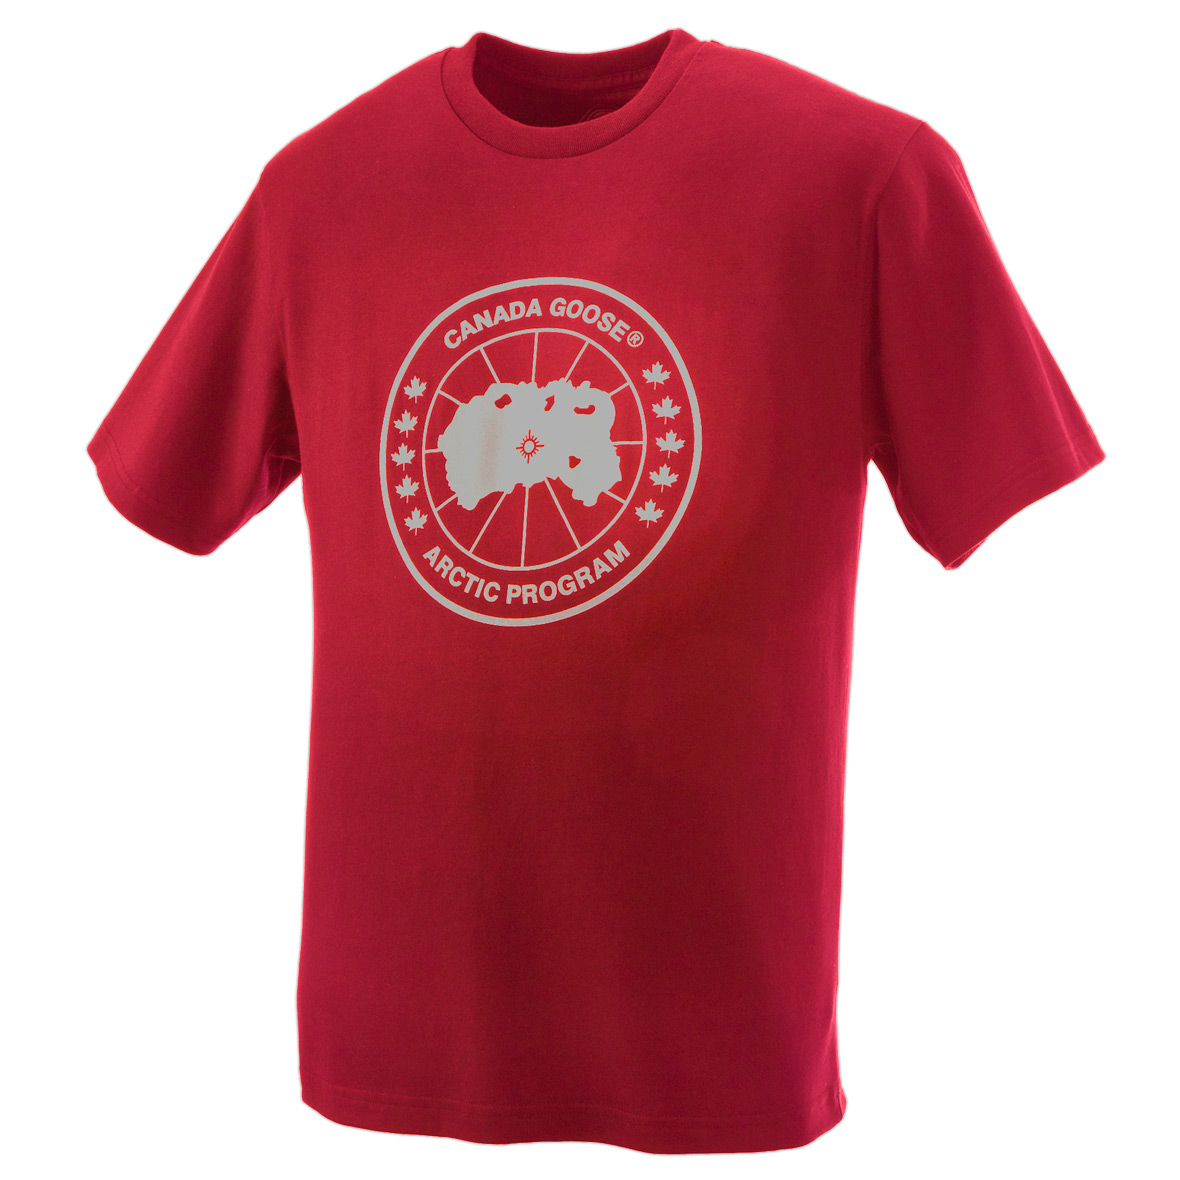 Canada Goose Logo T-Shirt RED For Women